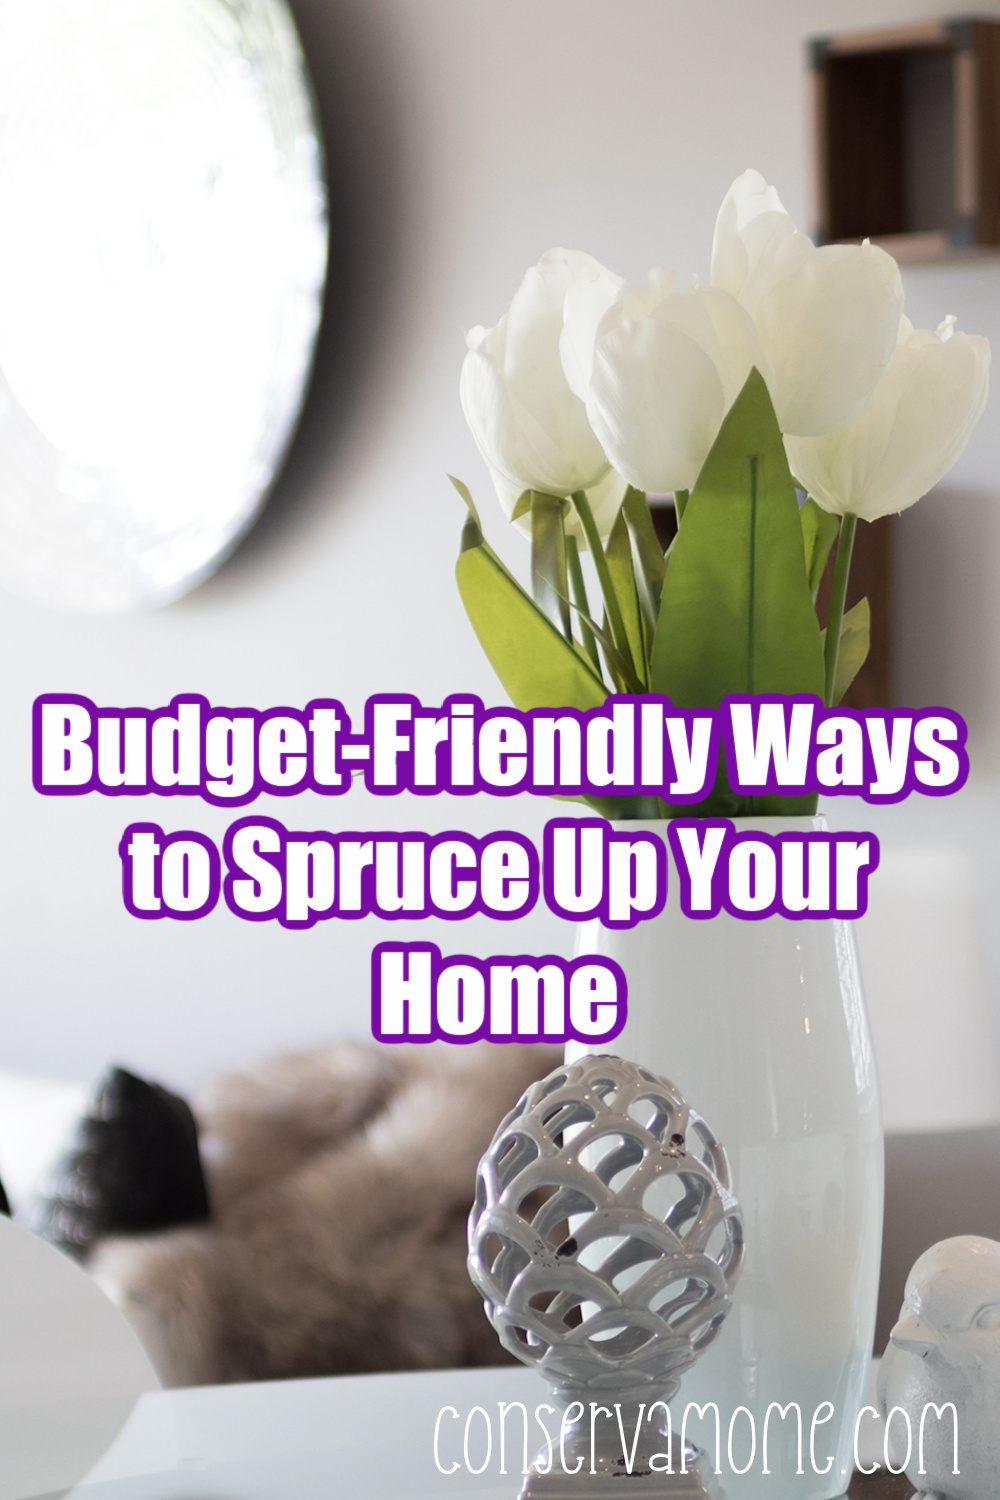 Budget friendly ways to spruce up your home